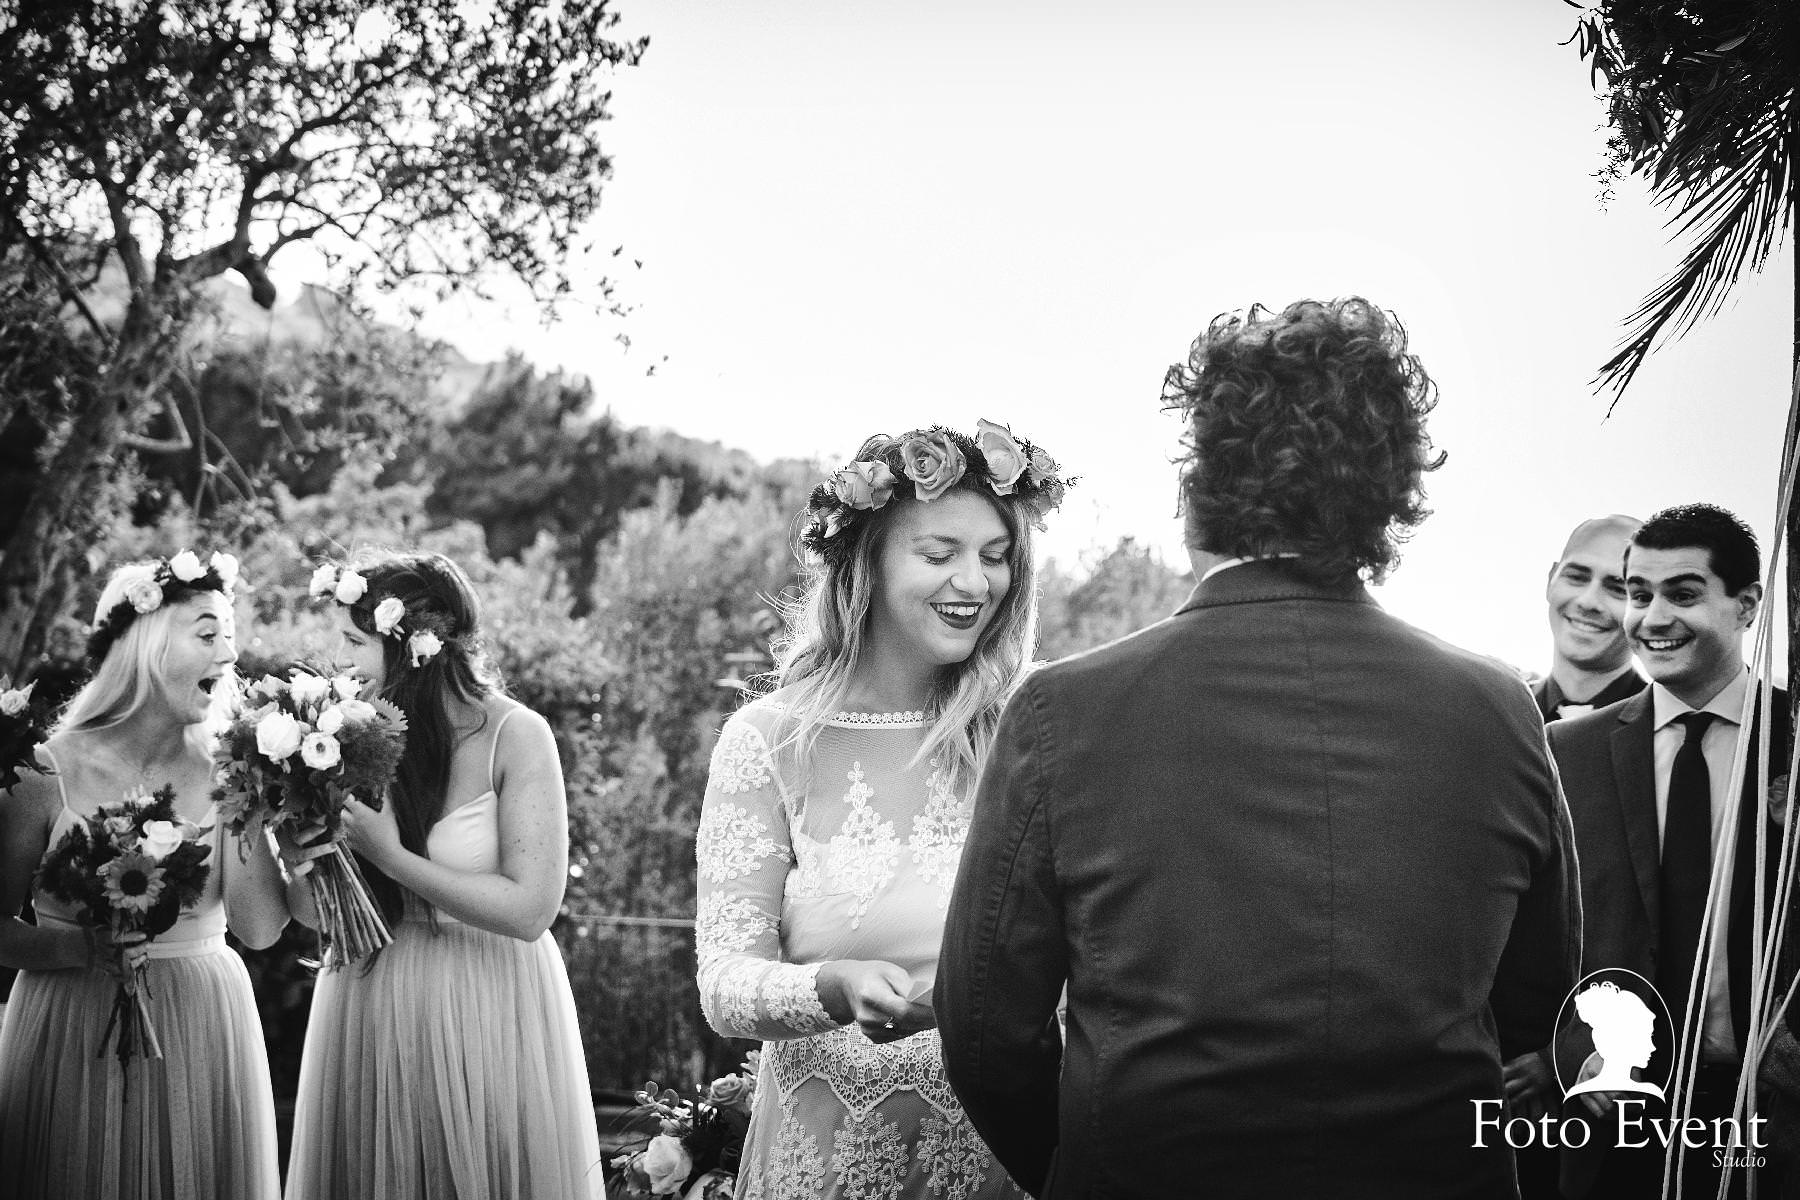 Destination wedding sicily Elisa Bellanti Foto Event Studio 230